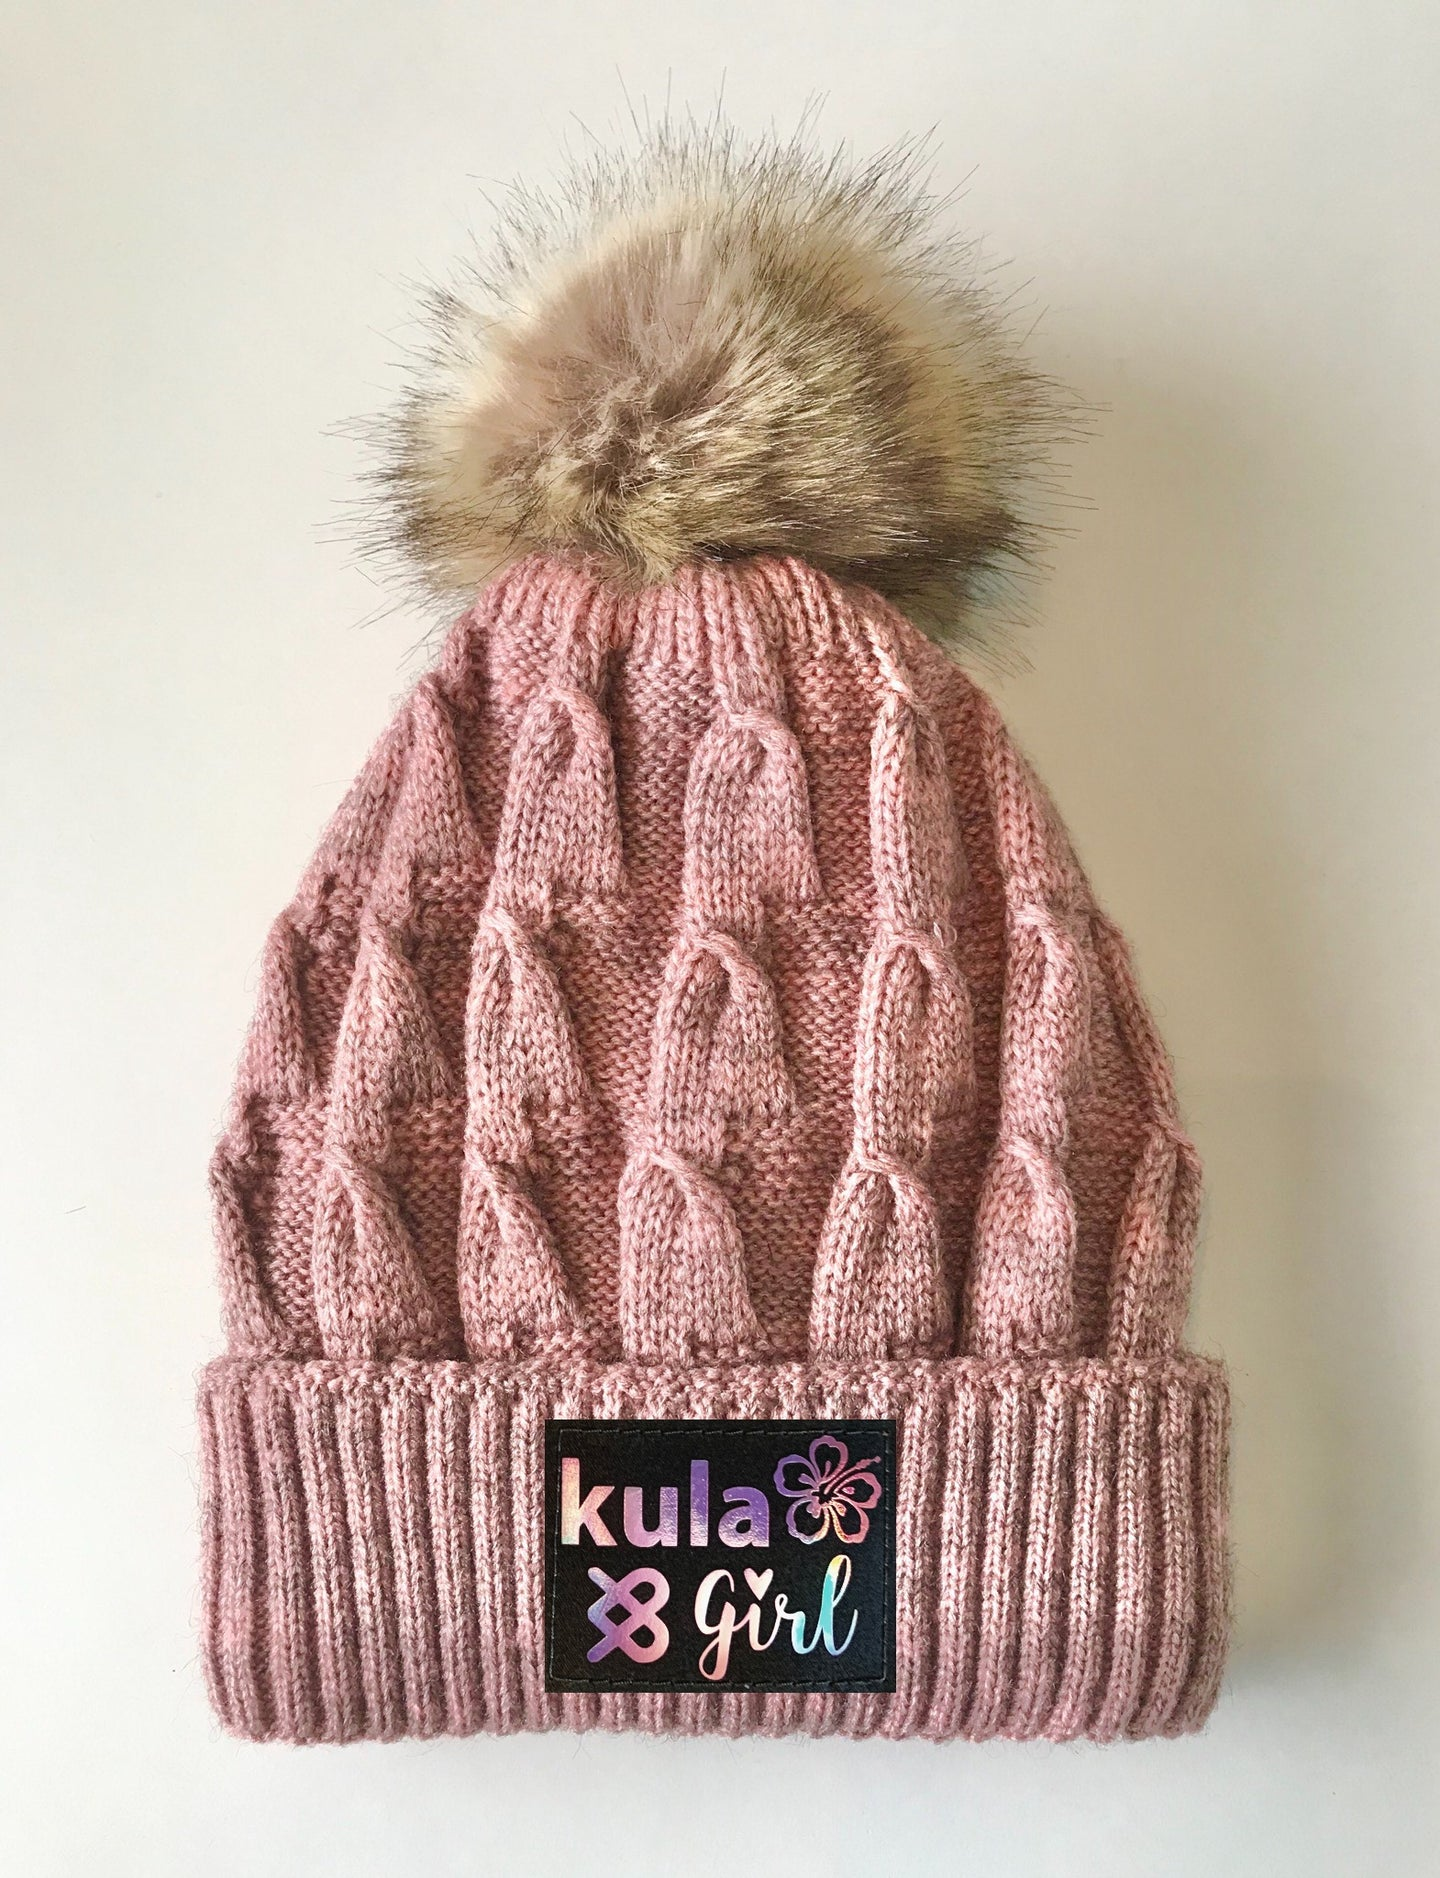 Pink Pom Pom Beanies by Buddha Gear and Kula Brands